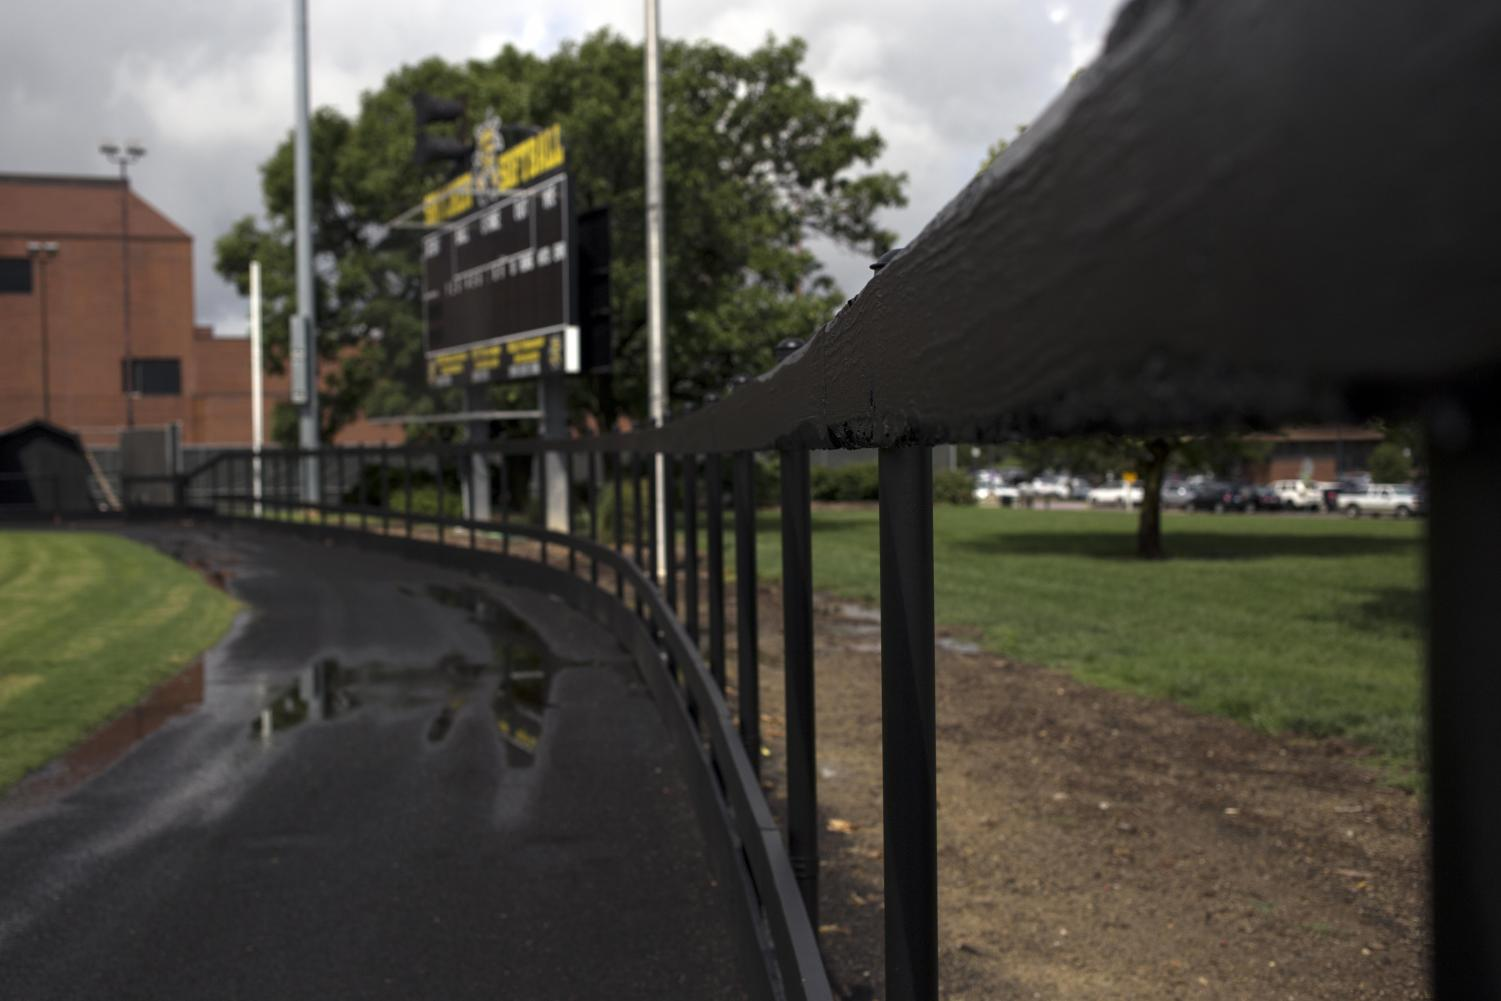 Wilkins Stadium will have a new fence in the outfield before the softball team begins their season. The project costed $100,000.